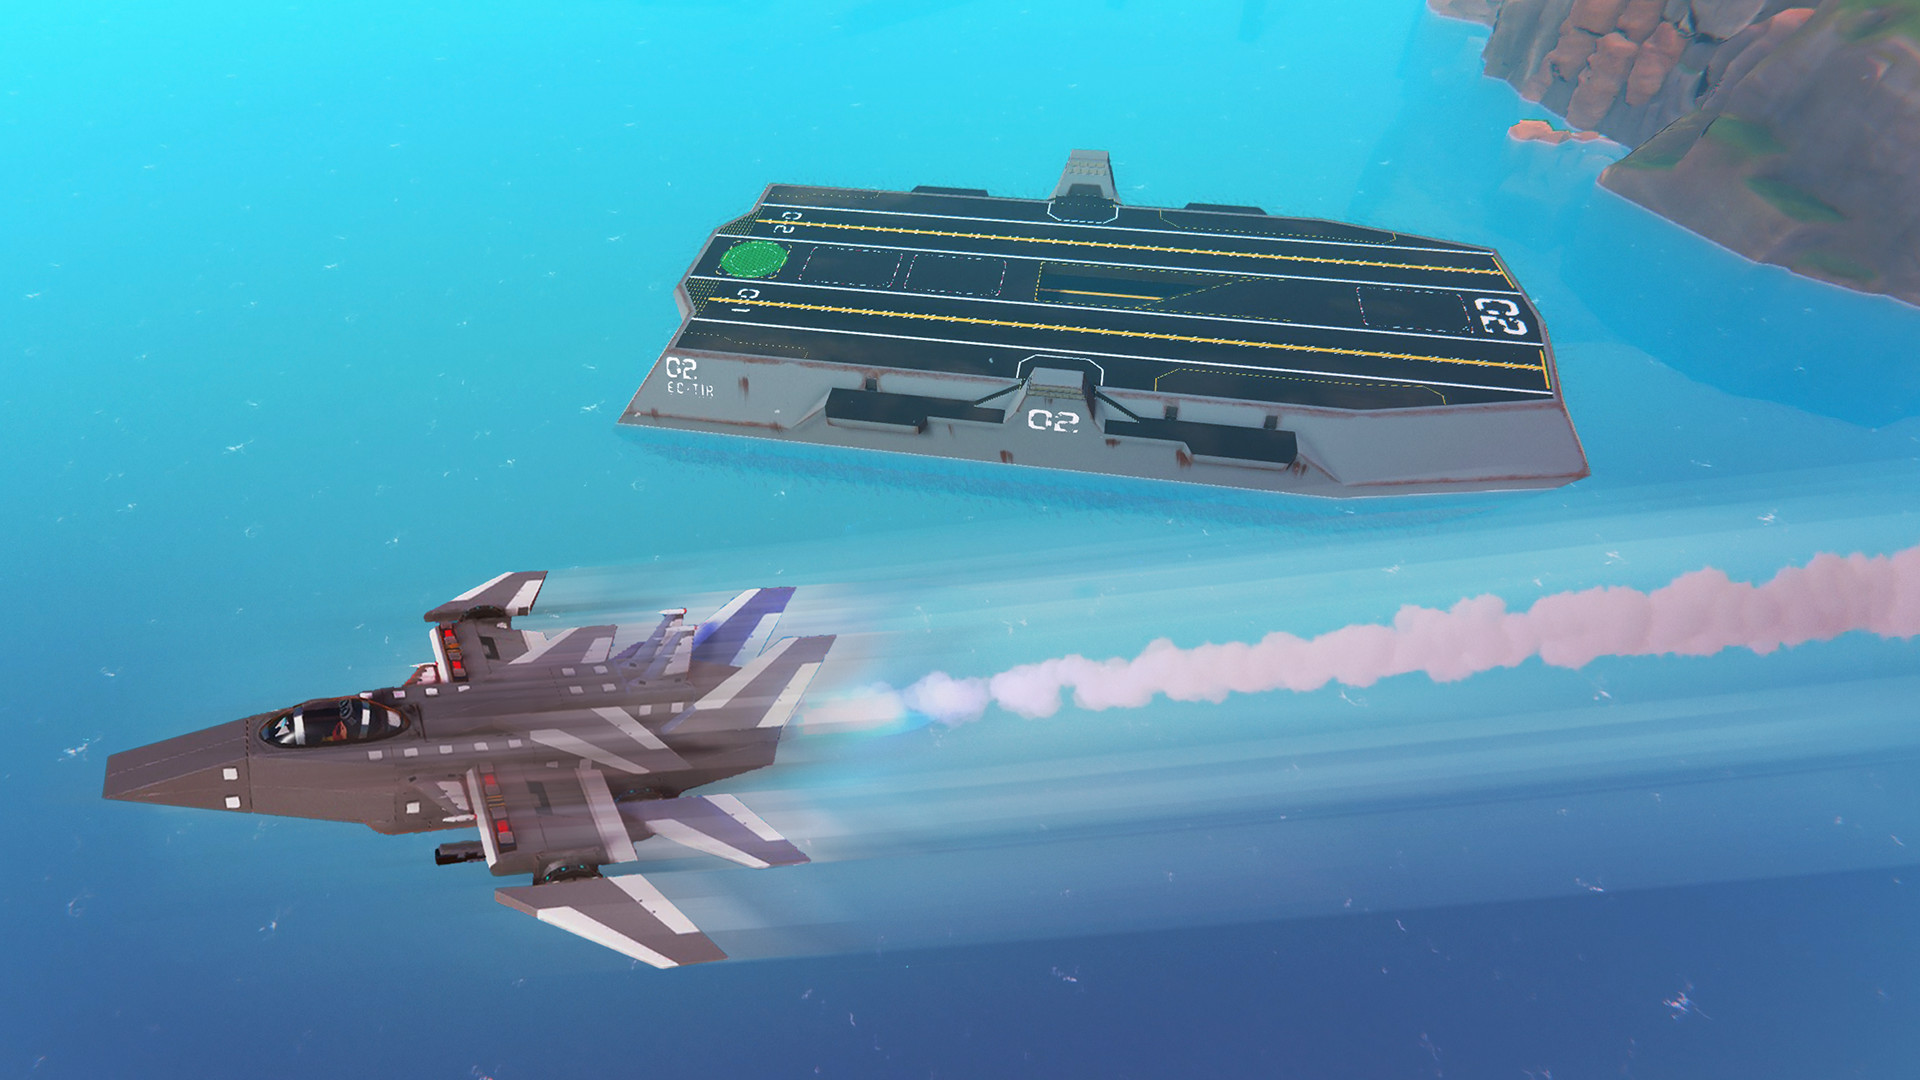 This is one of the large assets I made for Trailmakers, the  Expedition Carrier Tir .